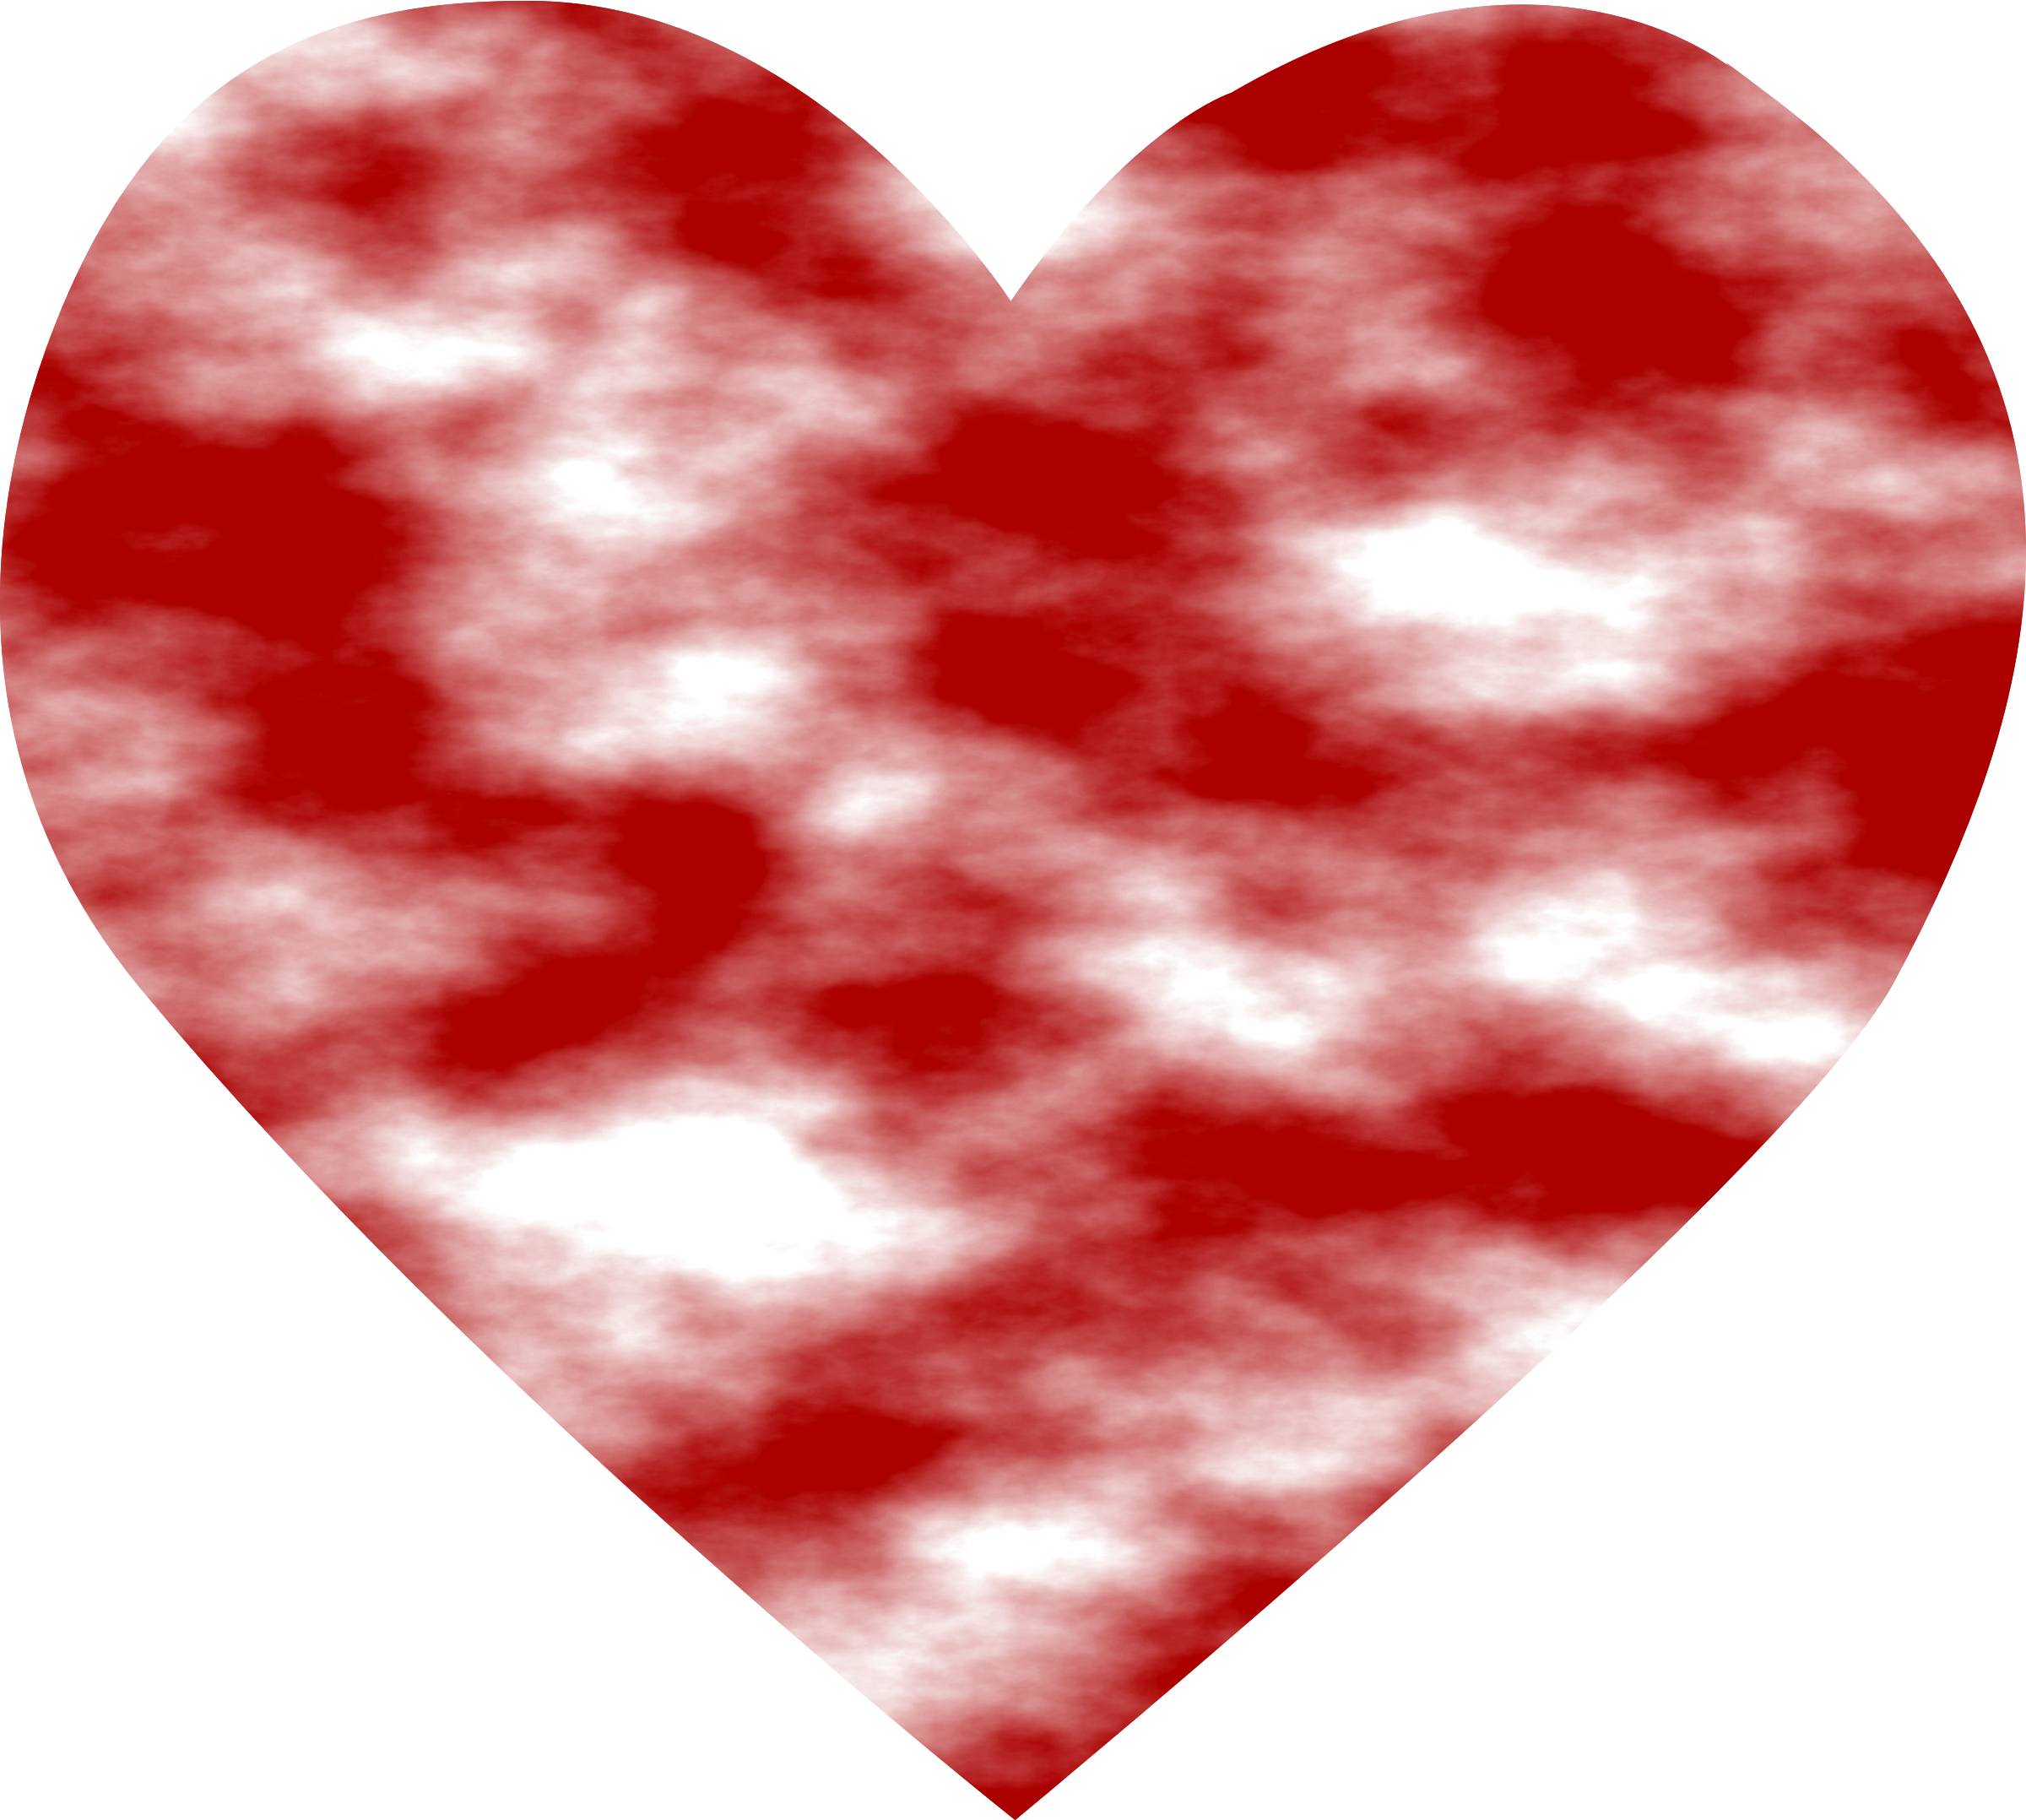 Heart big image png. Clouds clipart red